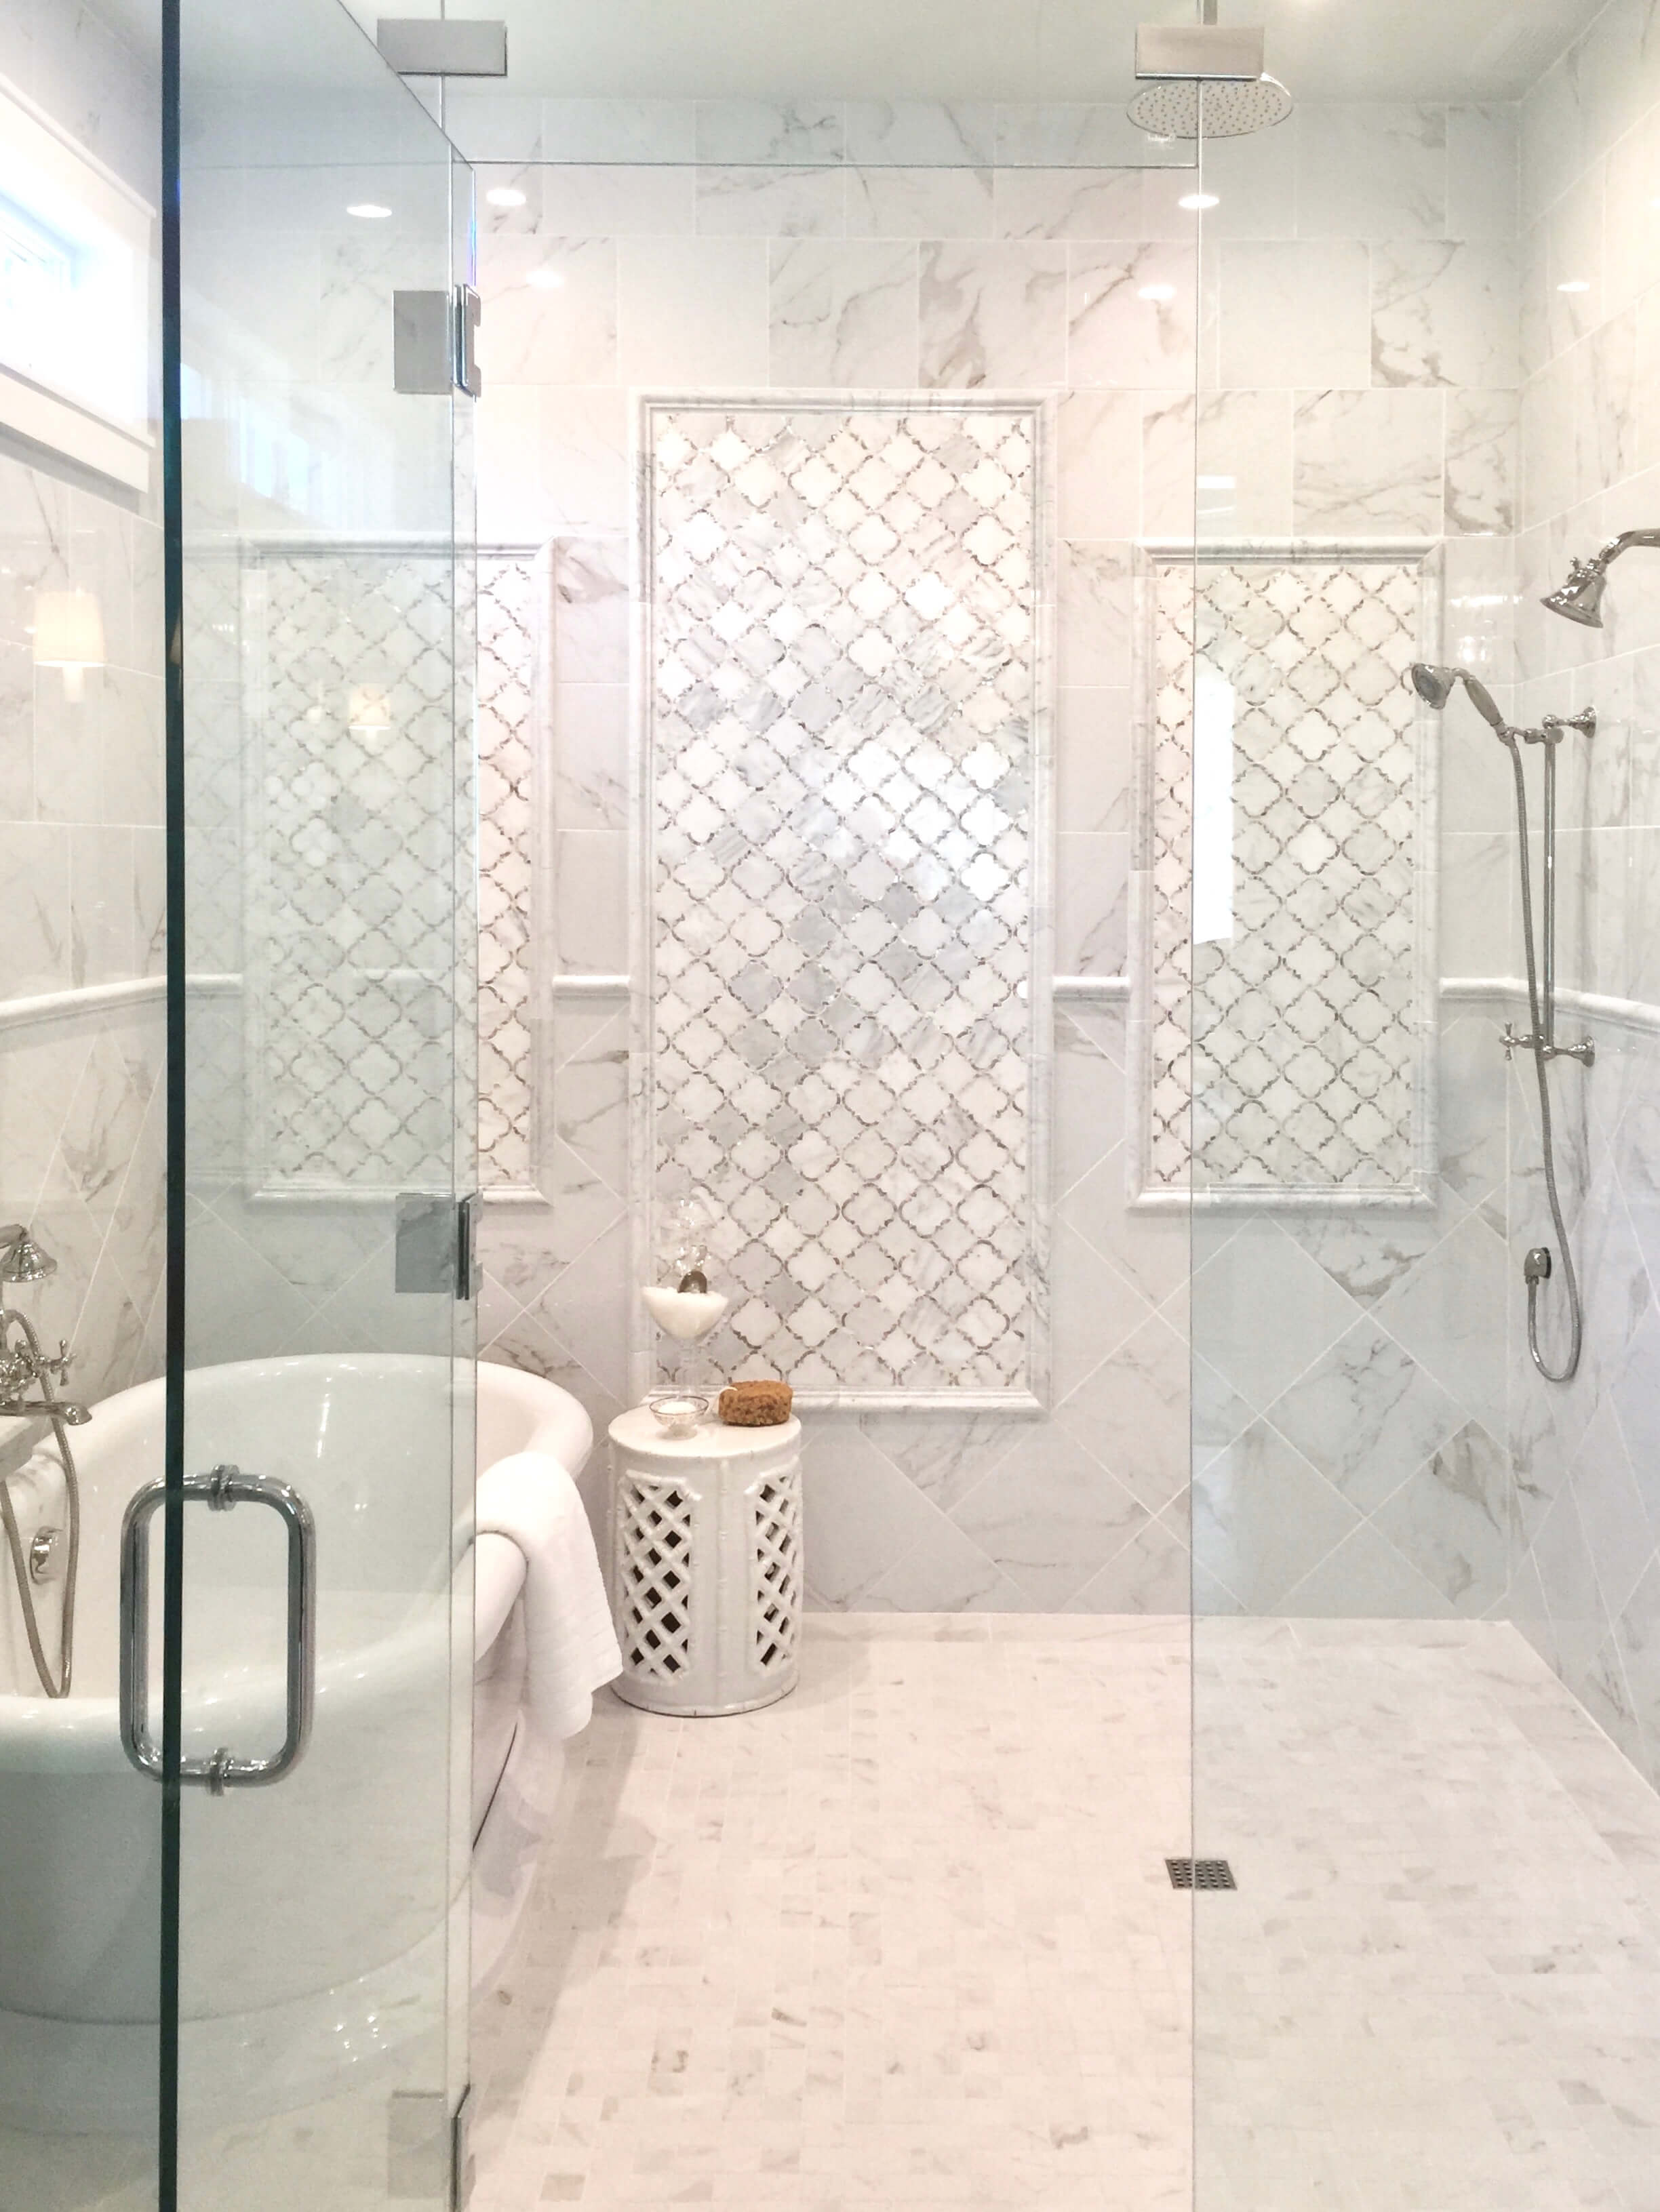 Super sized shower with tub inside, designed by: Chairma Design Group at  Southern Living Showcase Home